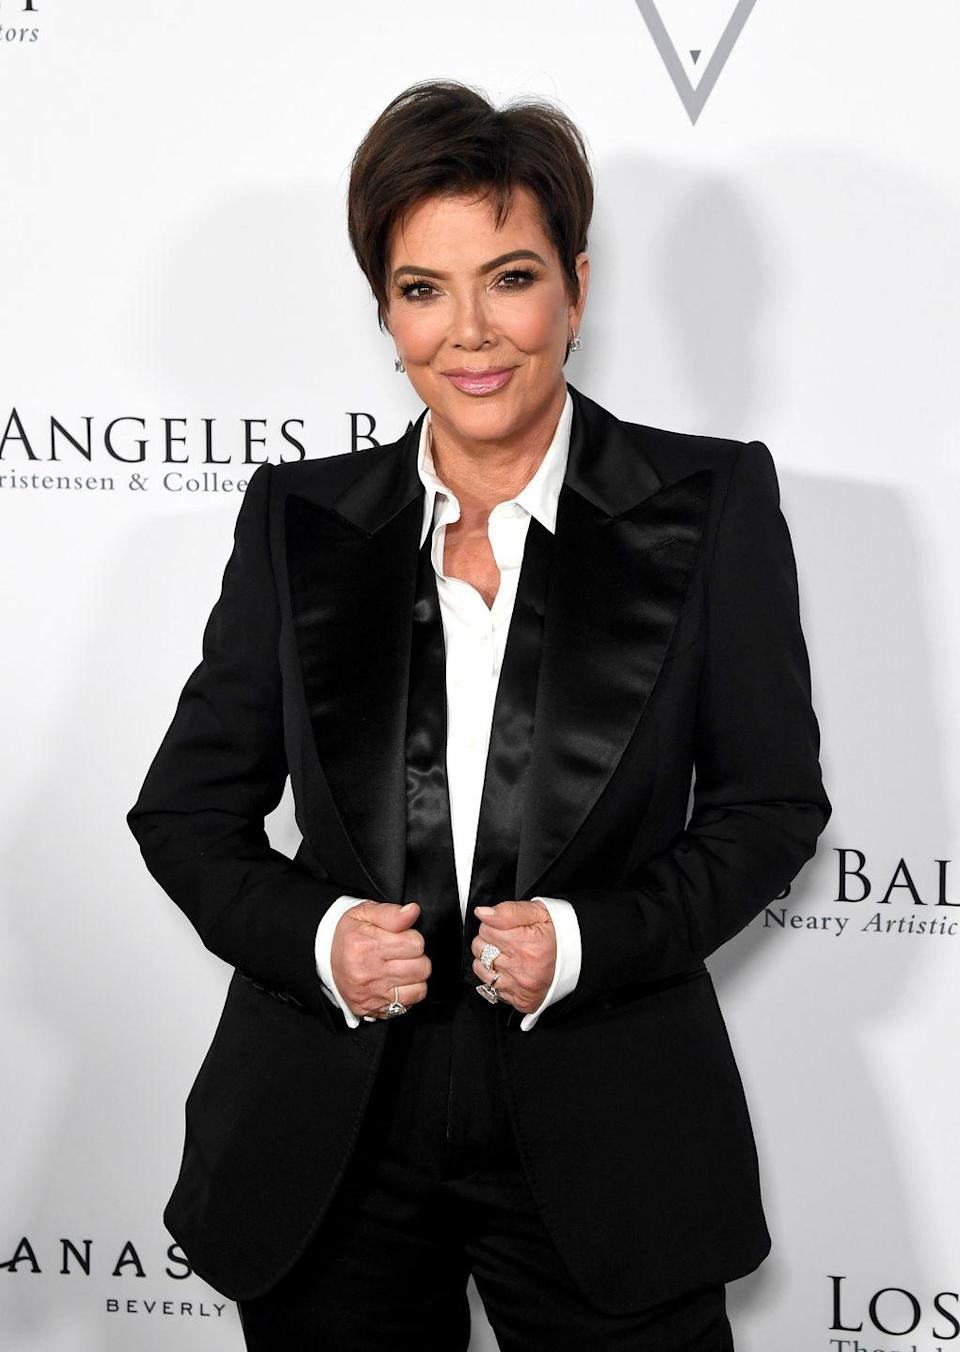 """<p>She admitted as much to the <a href=""""https://www.hollywoodreporter.com/features/kardashian-decade-how-a-sex-tape-led-a-billion-dollar-brand-1029592"""" rel=""""nofollow noopener"""" target=""""_blank"""" data-ylk=""""slk:Hollywood Reporter"""" class=""""link rapid-noclick-resp""""><em>Hollywood Reporter</em></a>, saying, """"I mean, believe me, I'm not going to lie, there's been times when I've walked away from the camera and I've got a big bump in my hair and I'm like, 'Take that out, my hair looks like shit.' I'm too vain to leave really ugly, ugly angles in.""""</p>"""